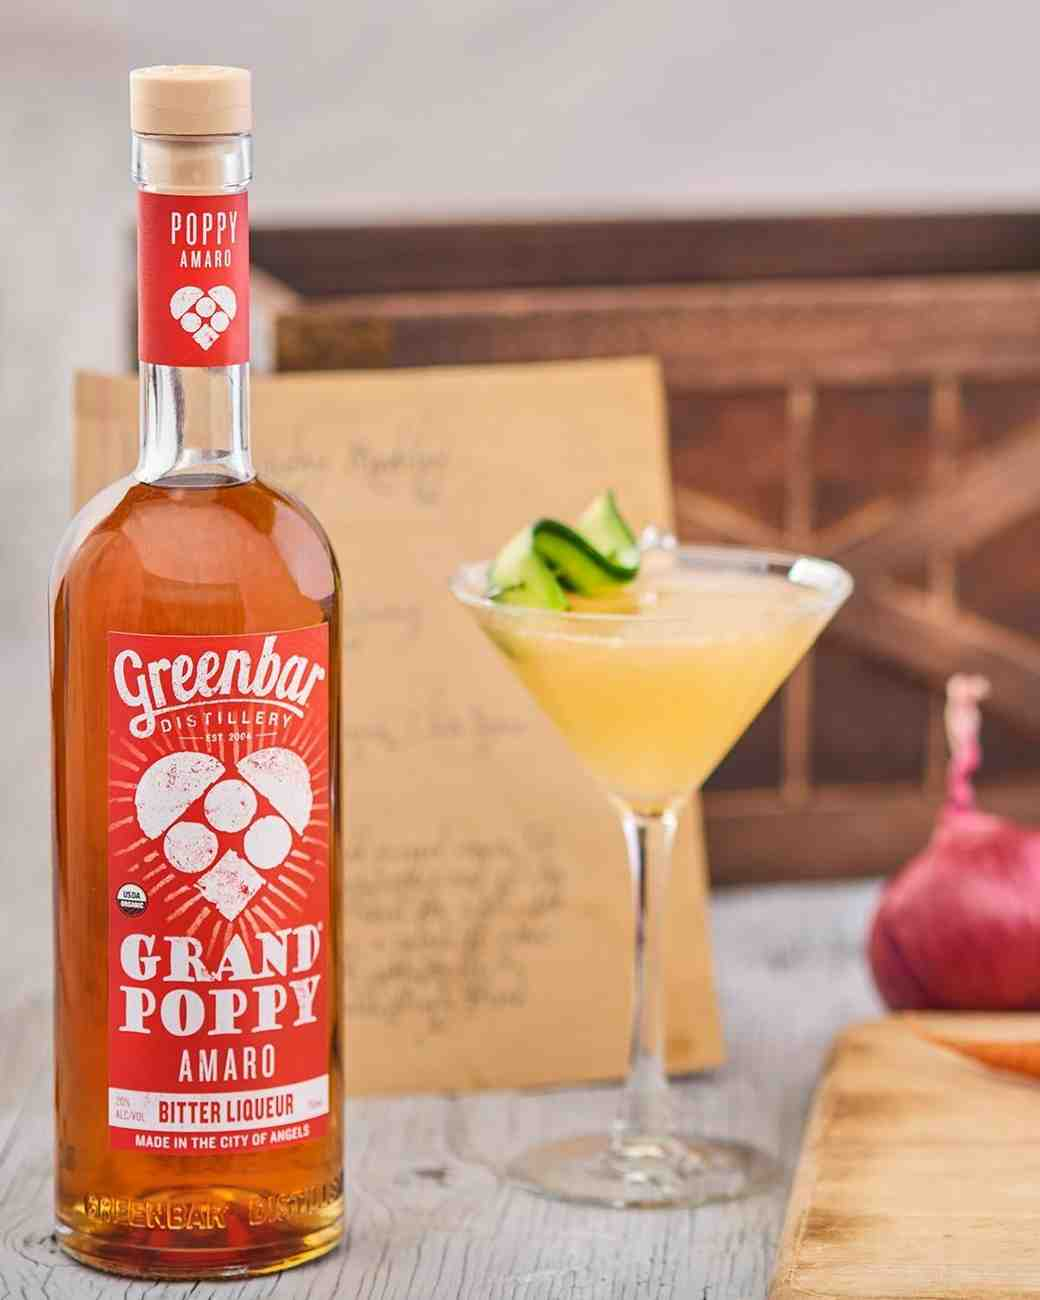 greenbar distillery grand poppy amaro